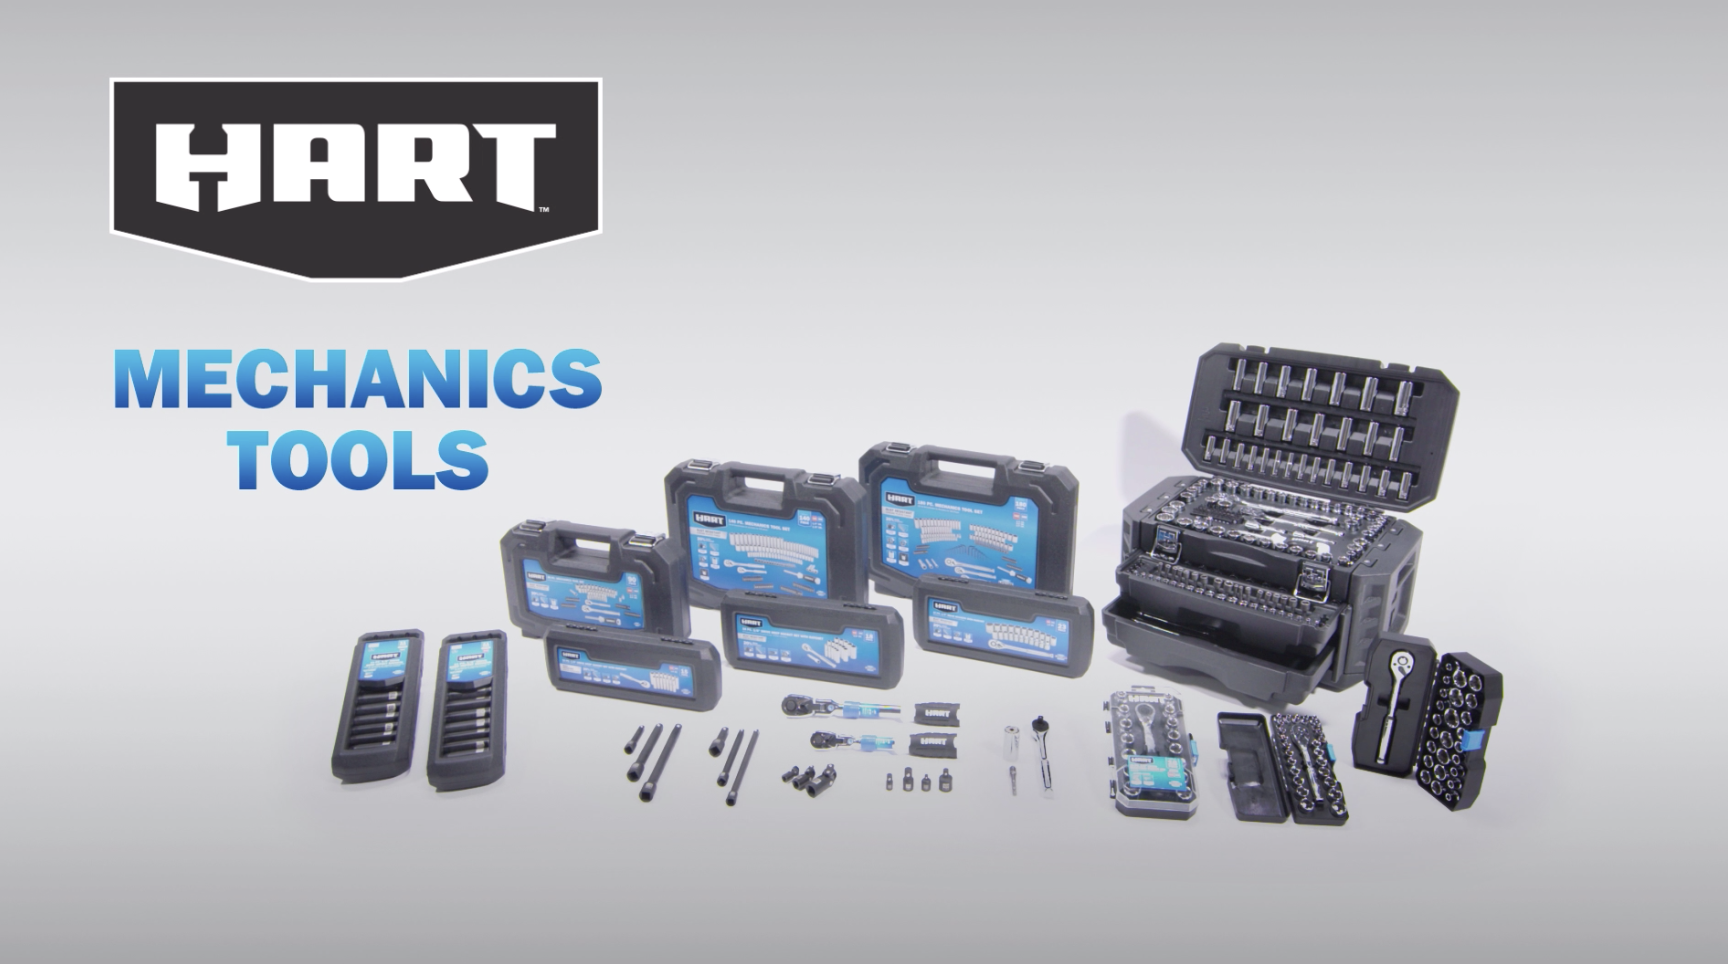 HART Mechanics Tools